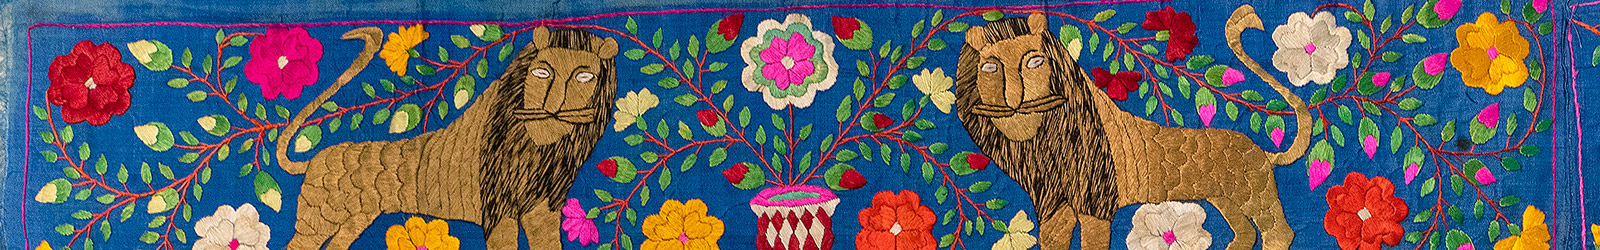 detail of embroidery with two lions